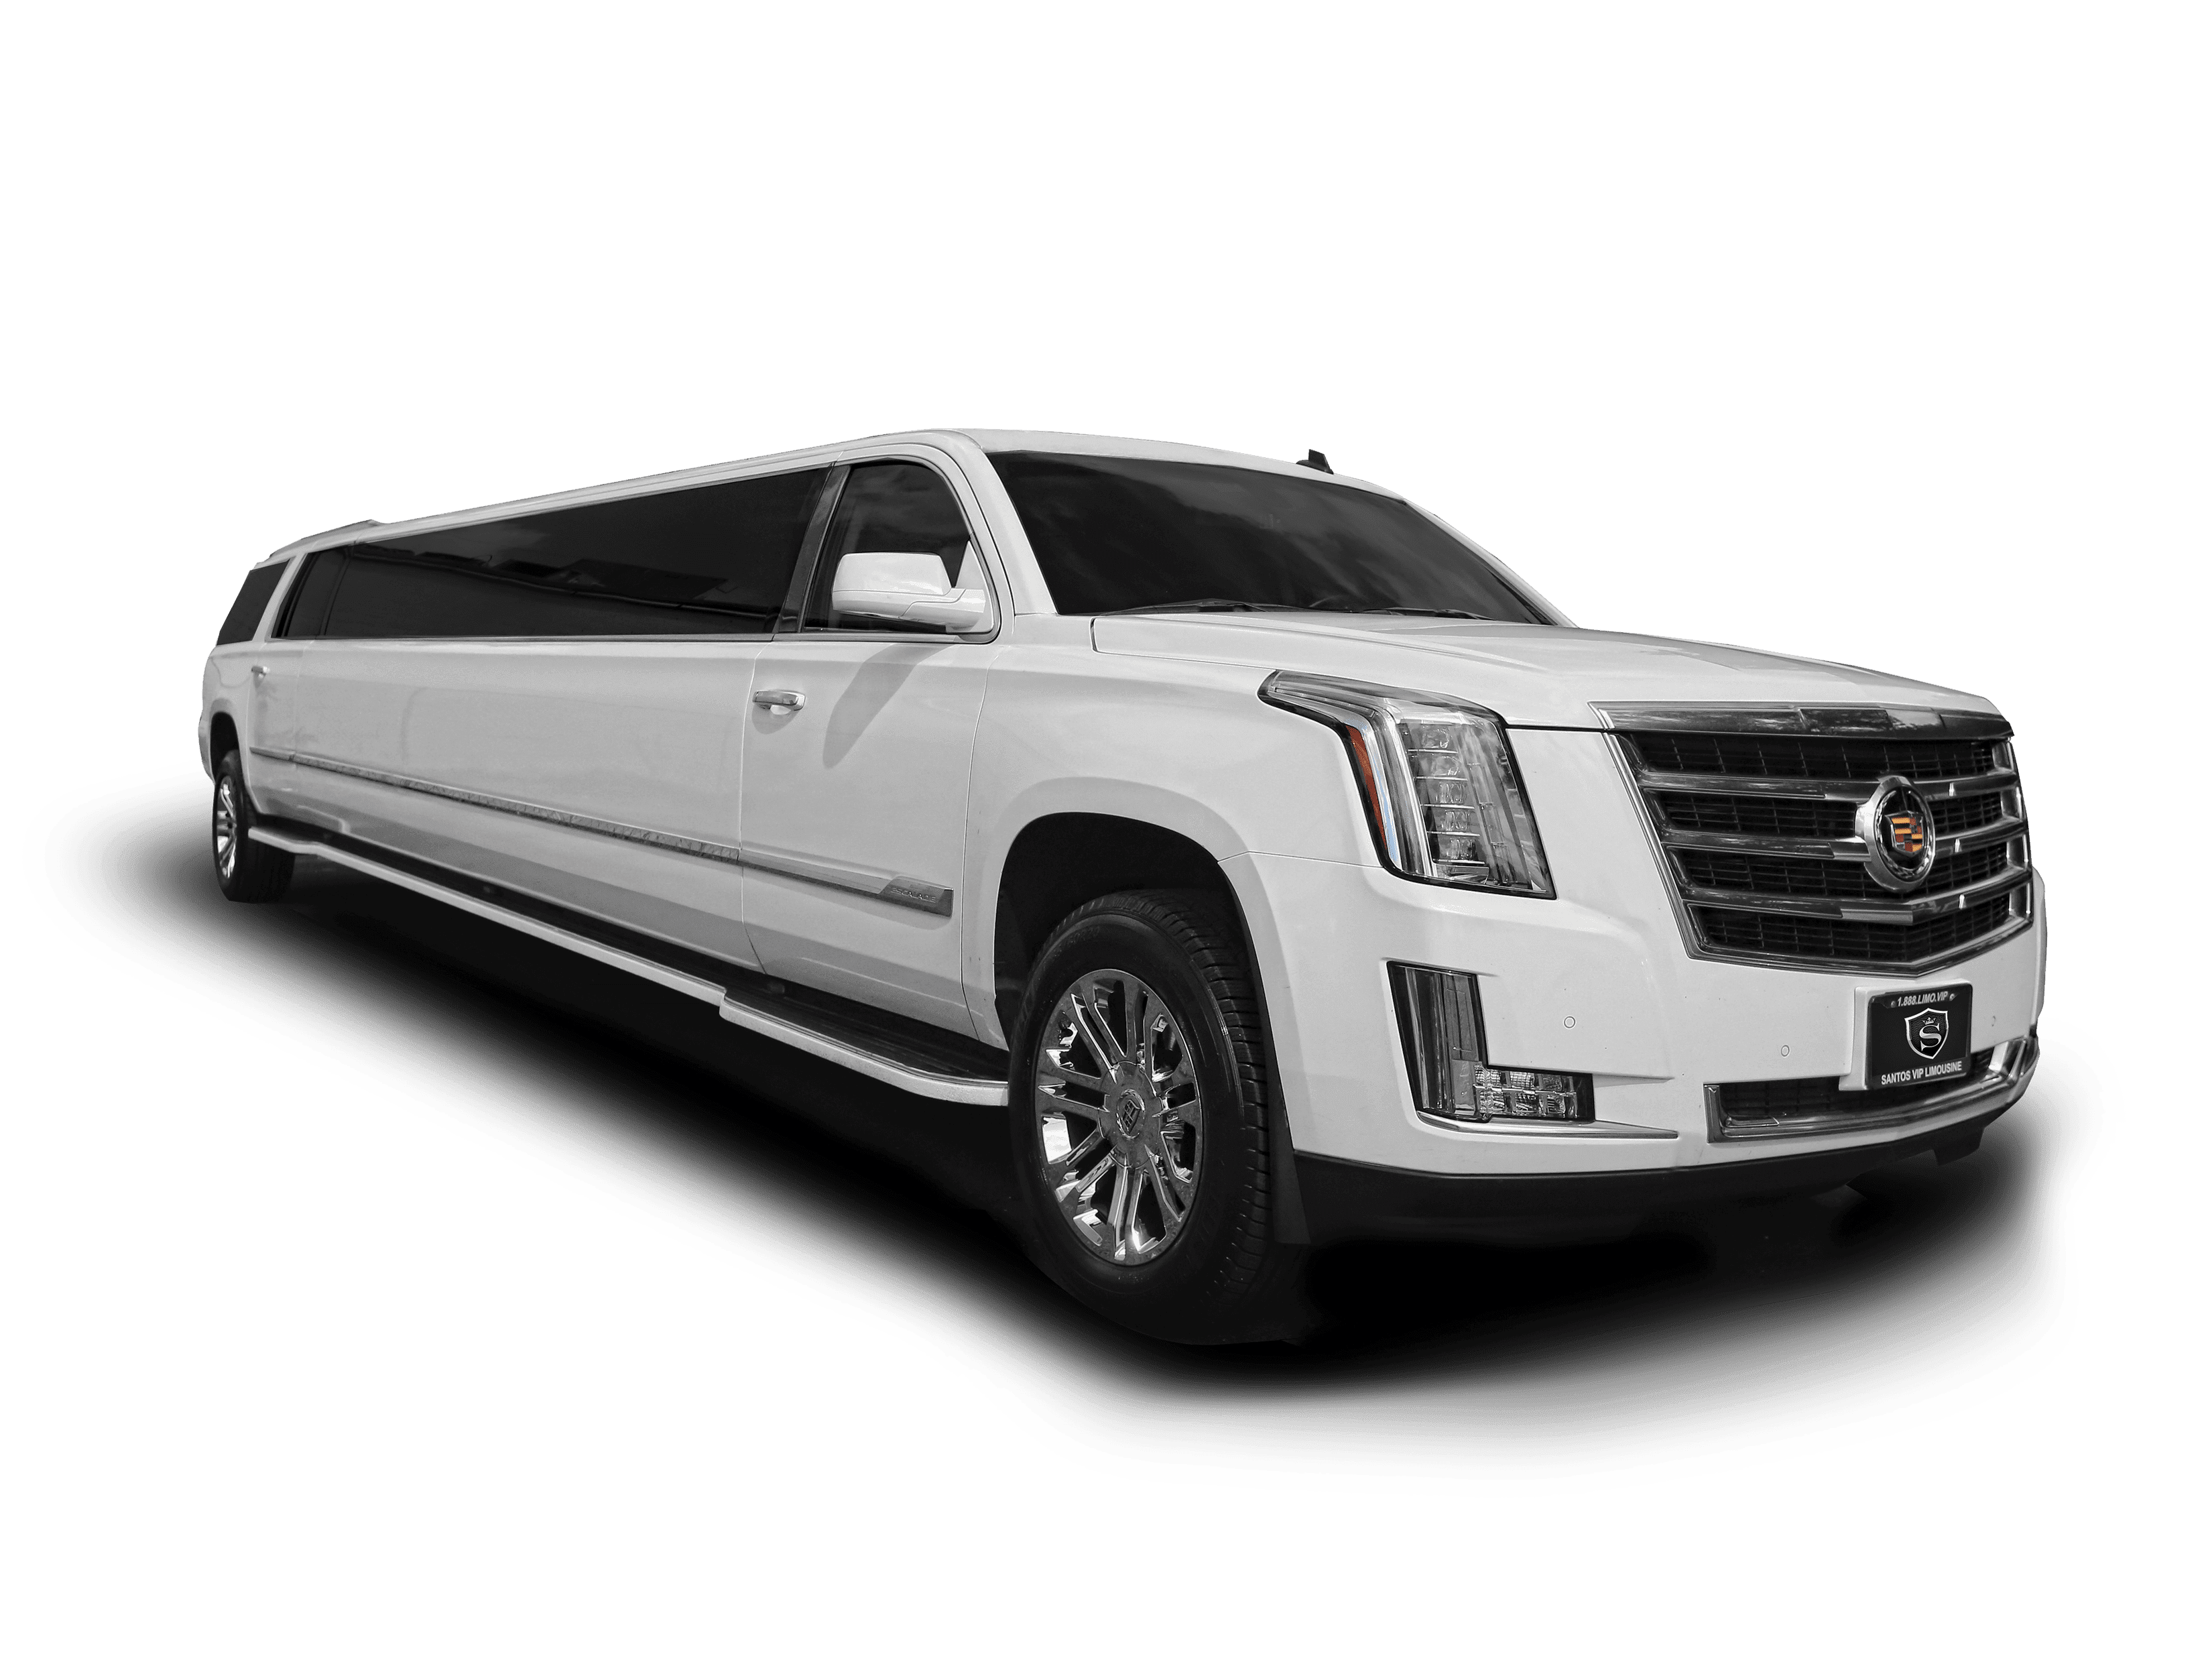 Cadillac Escalade ESV limousine for NJ Wine Tours and Wine Tasting trips in NJ